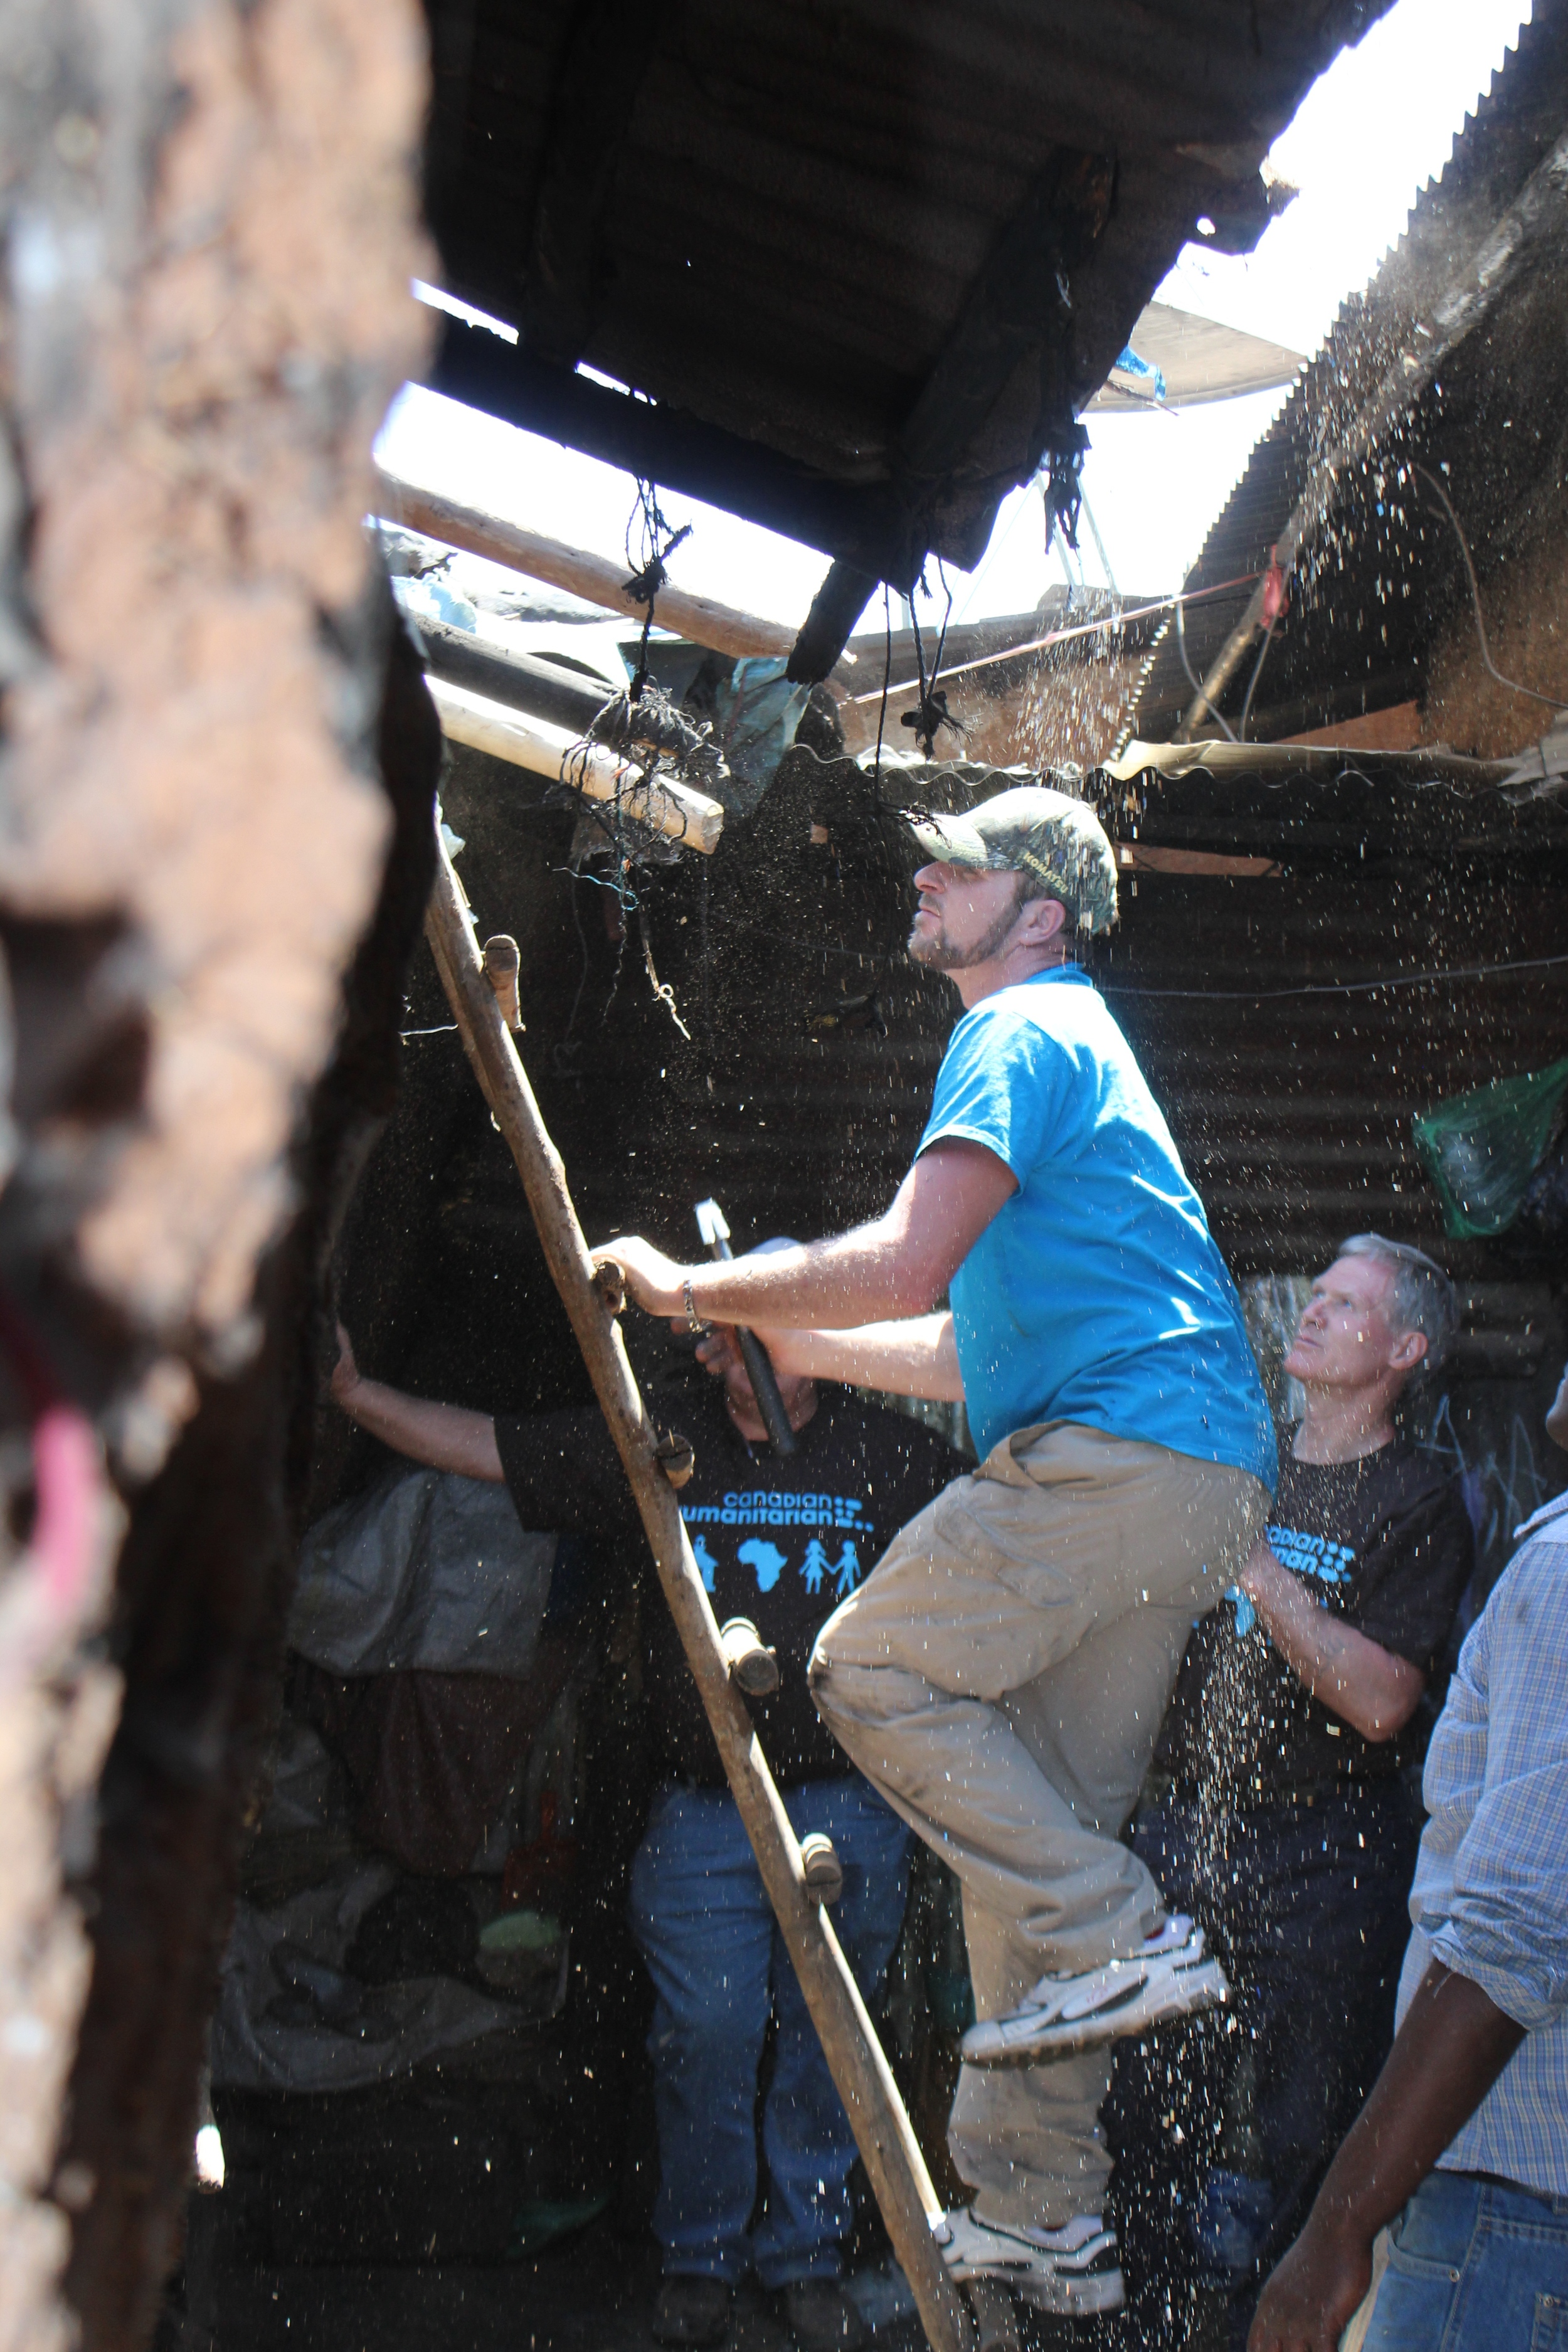 The roof comes off with a shower of debris - wood shavings, rat feces, soot and cinders, over Murray, Pete and Frank.